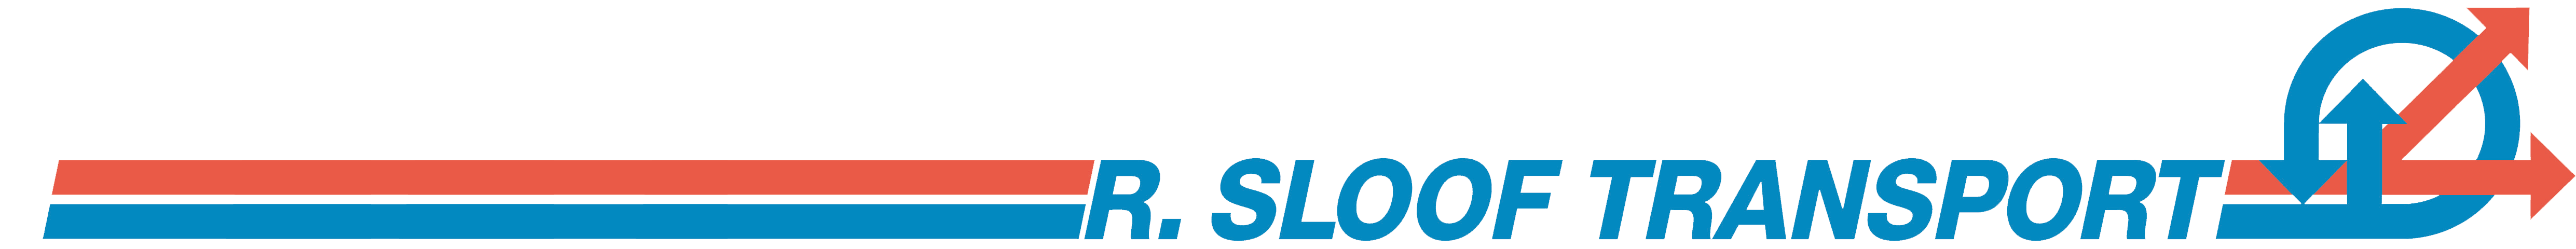 Slooftransport logo